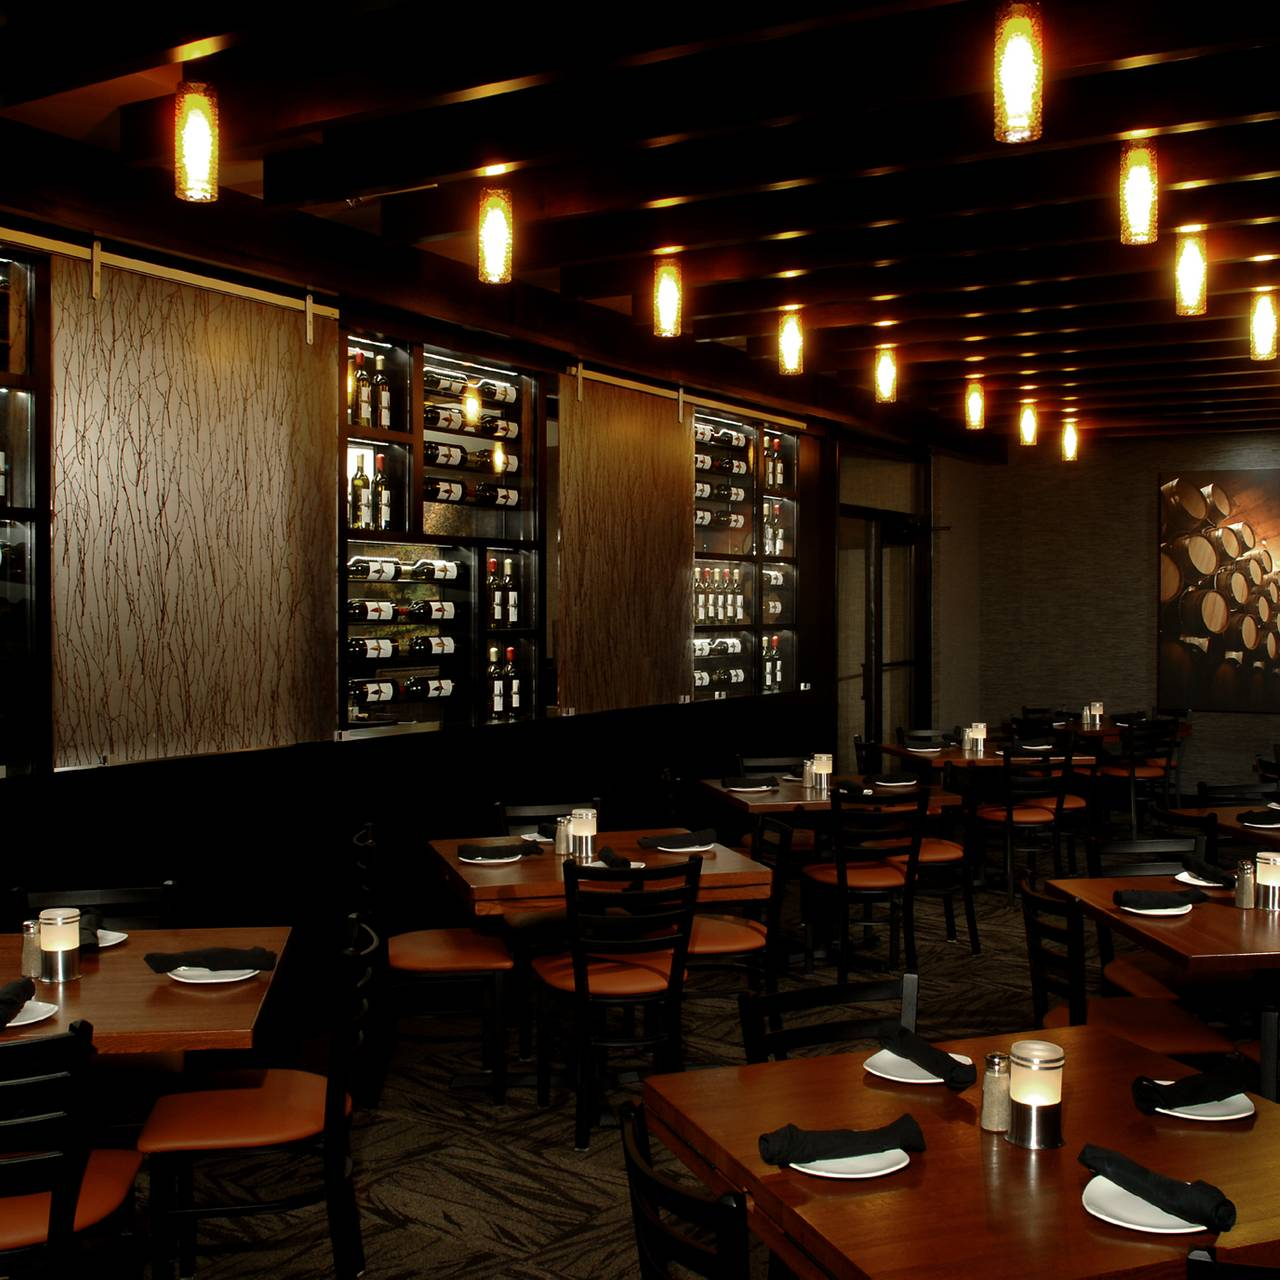 Cooper S Hawk Winery Restaurant Waterford Lakes Orlando Fl Opentable